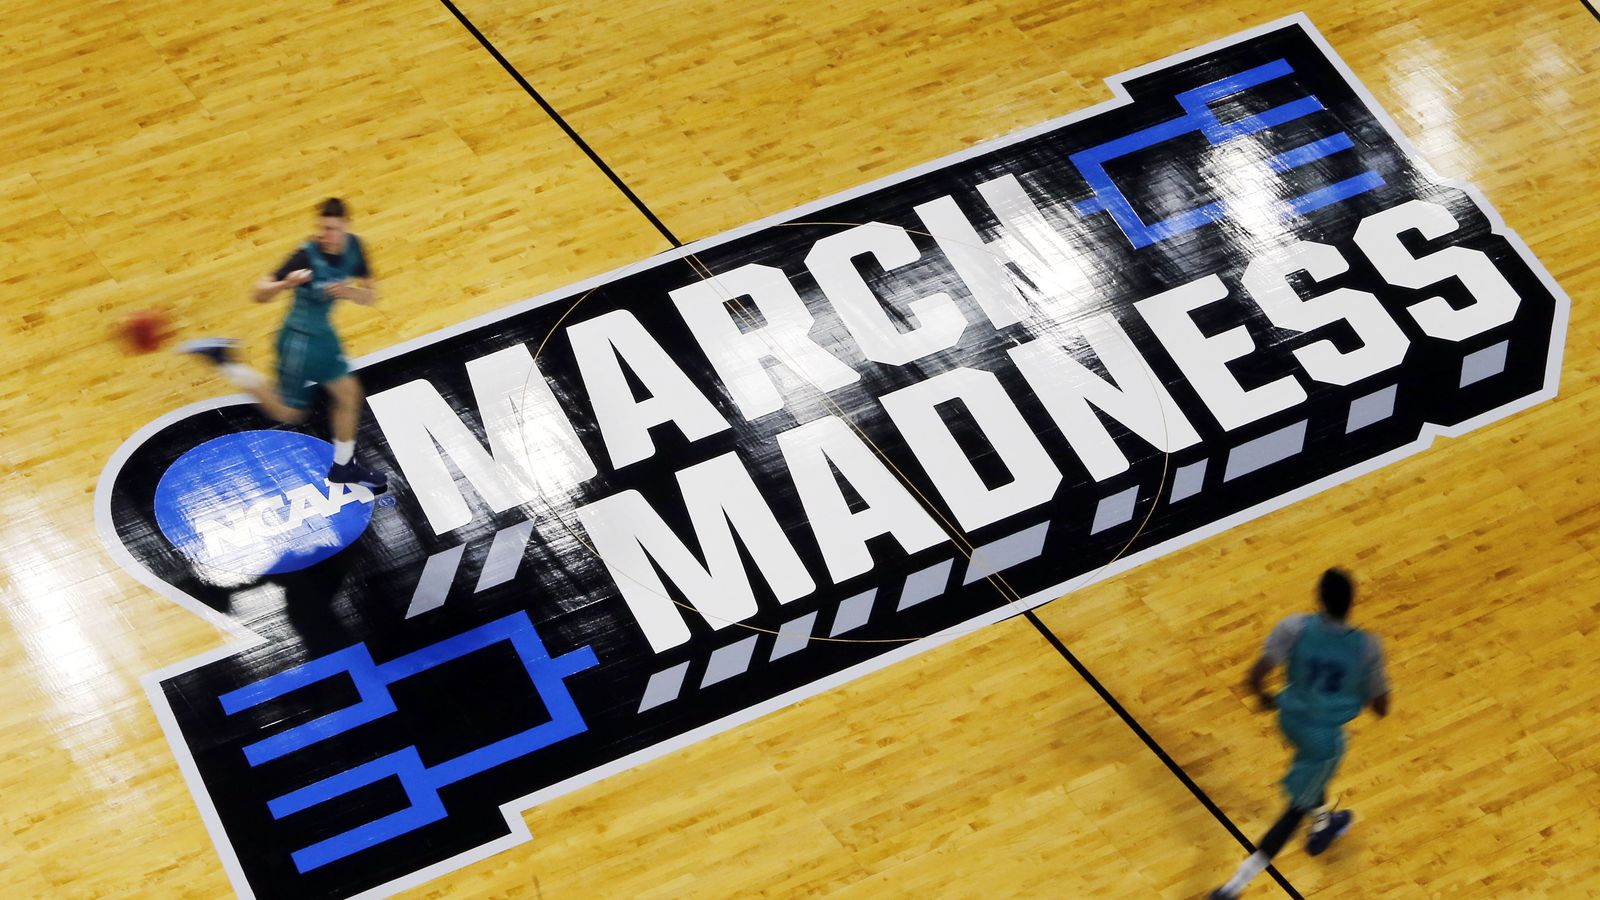 How To Watch Uk Basketball Play Etsu Game Time Tv: March Madness 2016 Streaming: How To Watch The NCAA